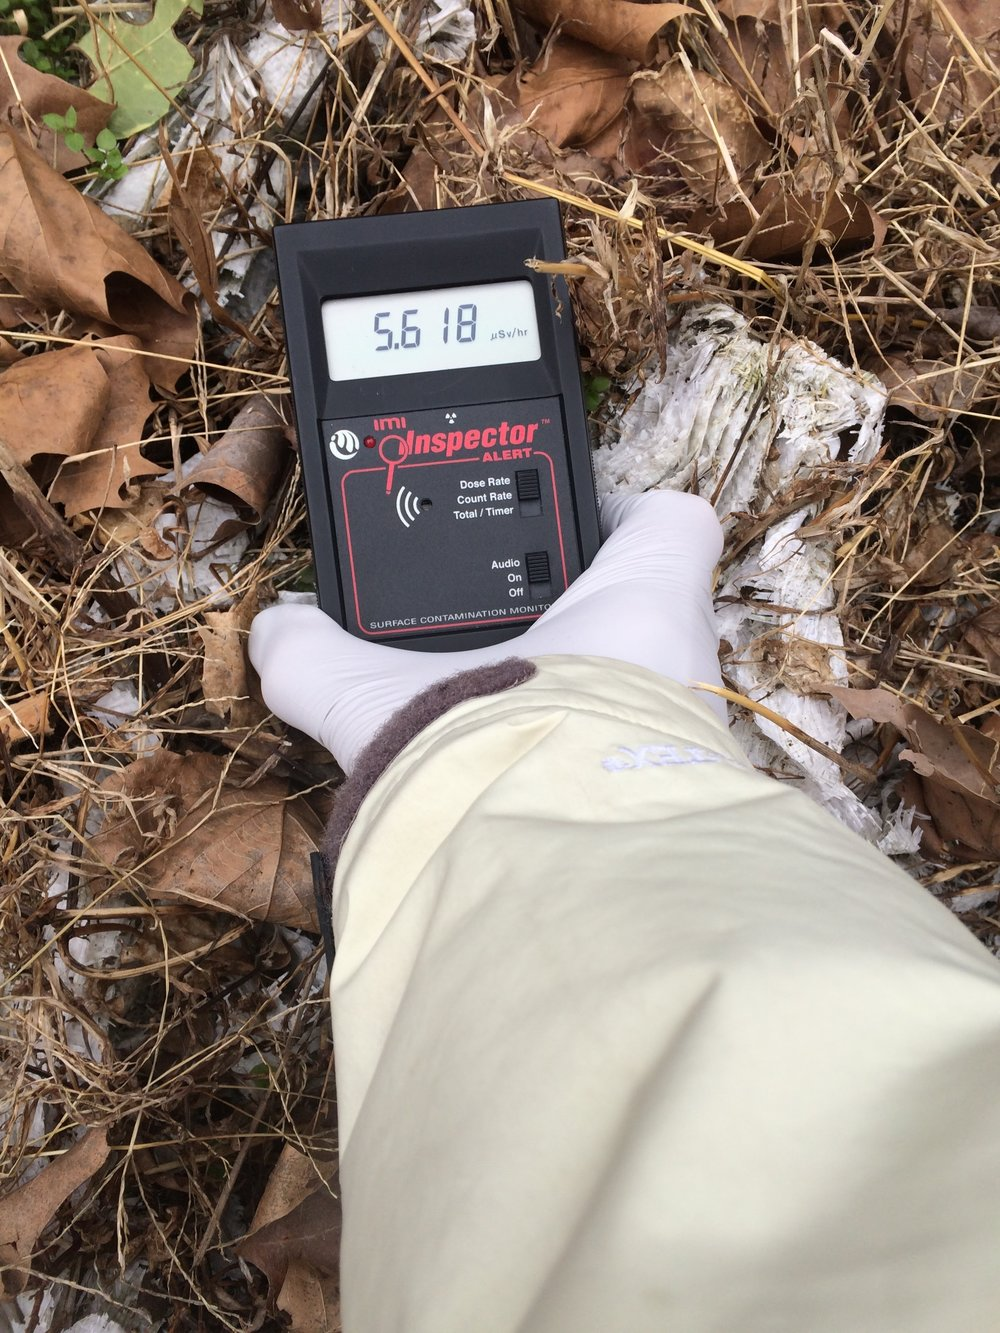 Radiation next to a driveway of a house where people were still residing. Measured 5.618 micro Sieverts/hour. 50x the normal background.